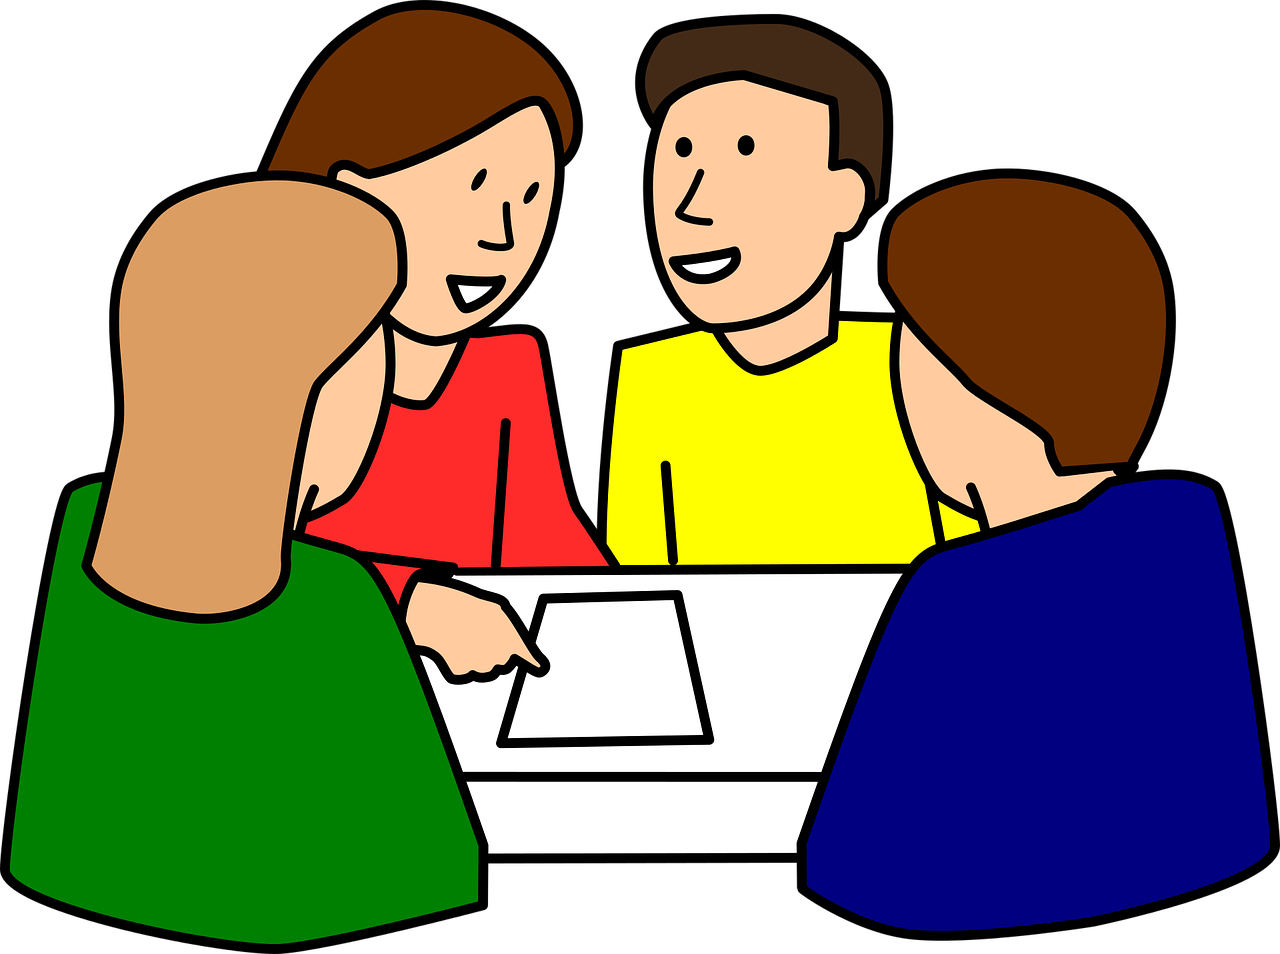 Collaboration clipart project based learning. Developing linguistic and intercultural